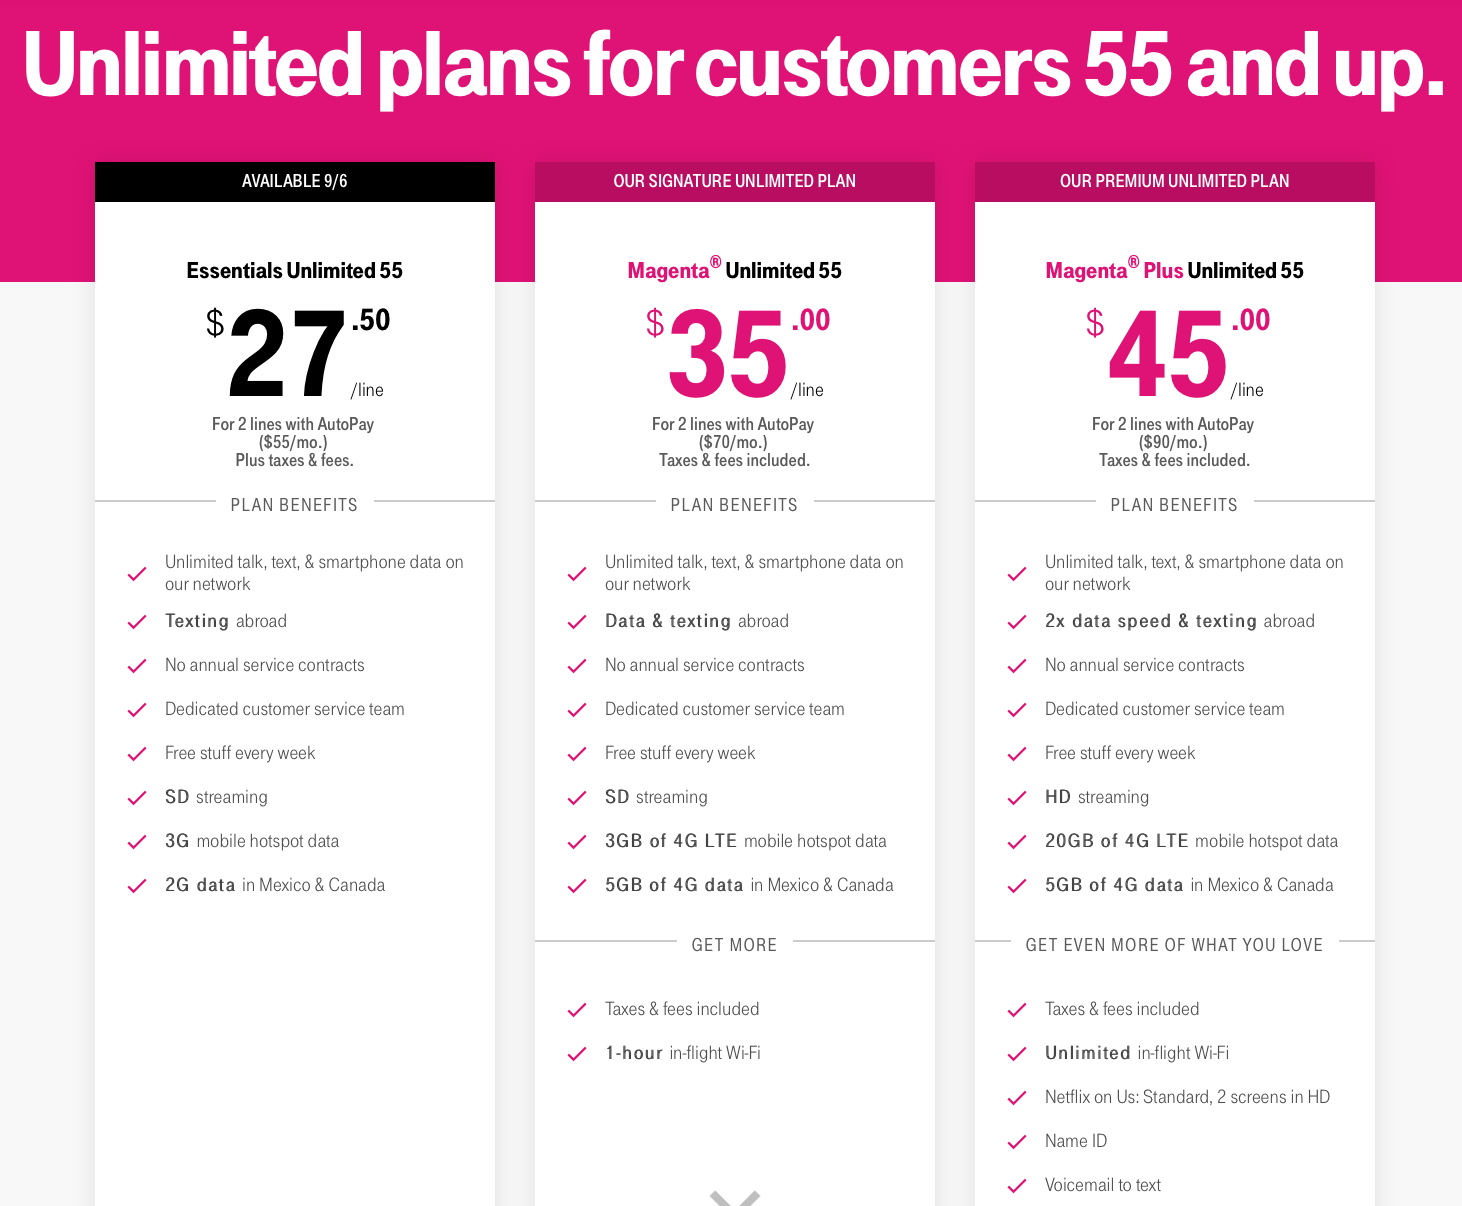 T Mobile Introduces Essentials Unlimited 55 Plan Offering 3 Tiers Of Senior Plans Mobile Internet Resource Center